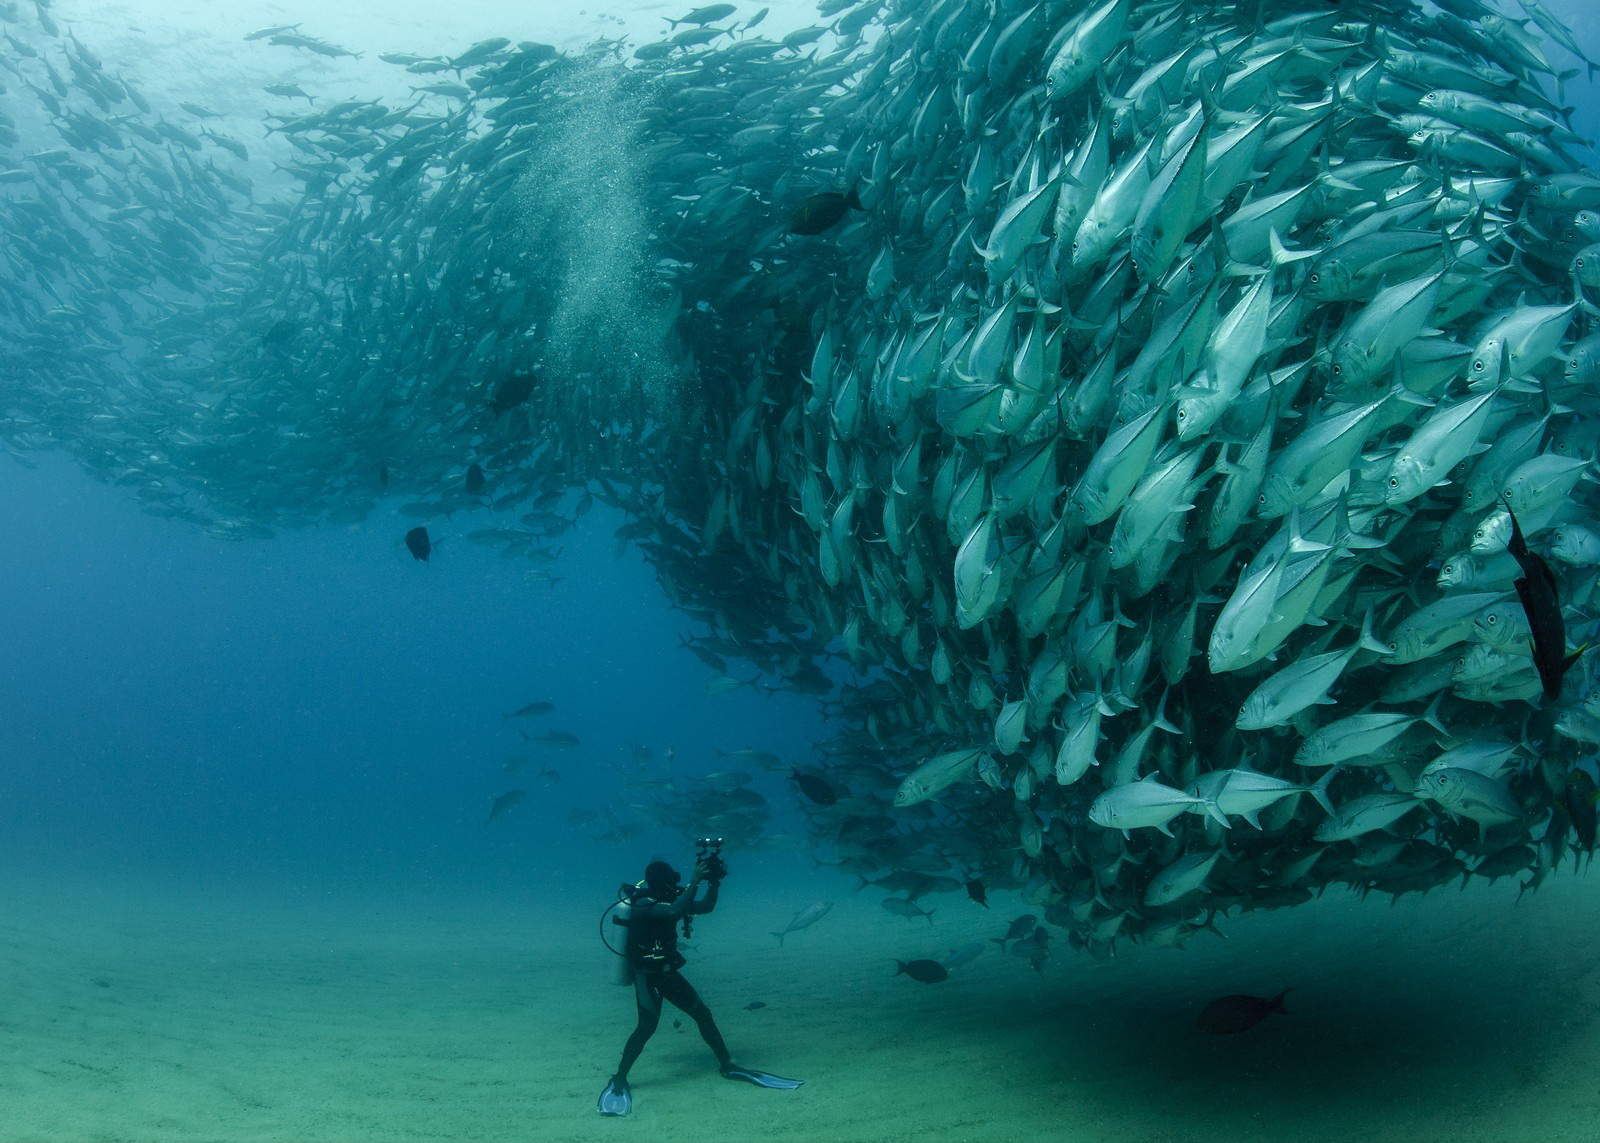 david-castro-with-a-swarm-of-bigeye-fish-at-cabo-pulmo-baja-california-sur-mexico-by-octavio-aburto